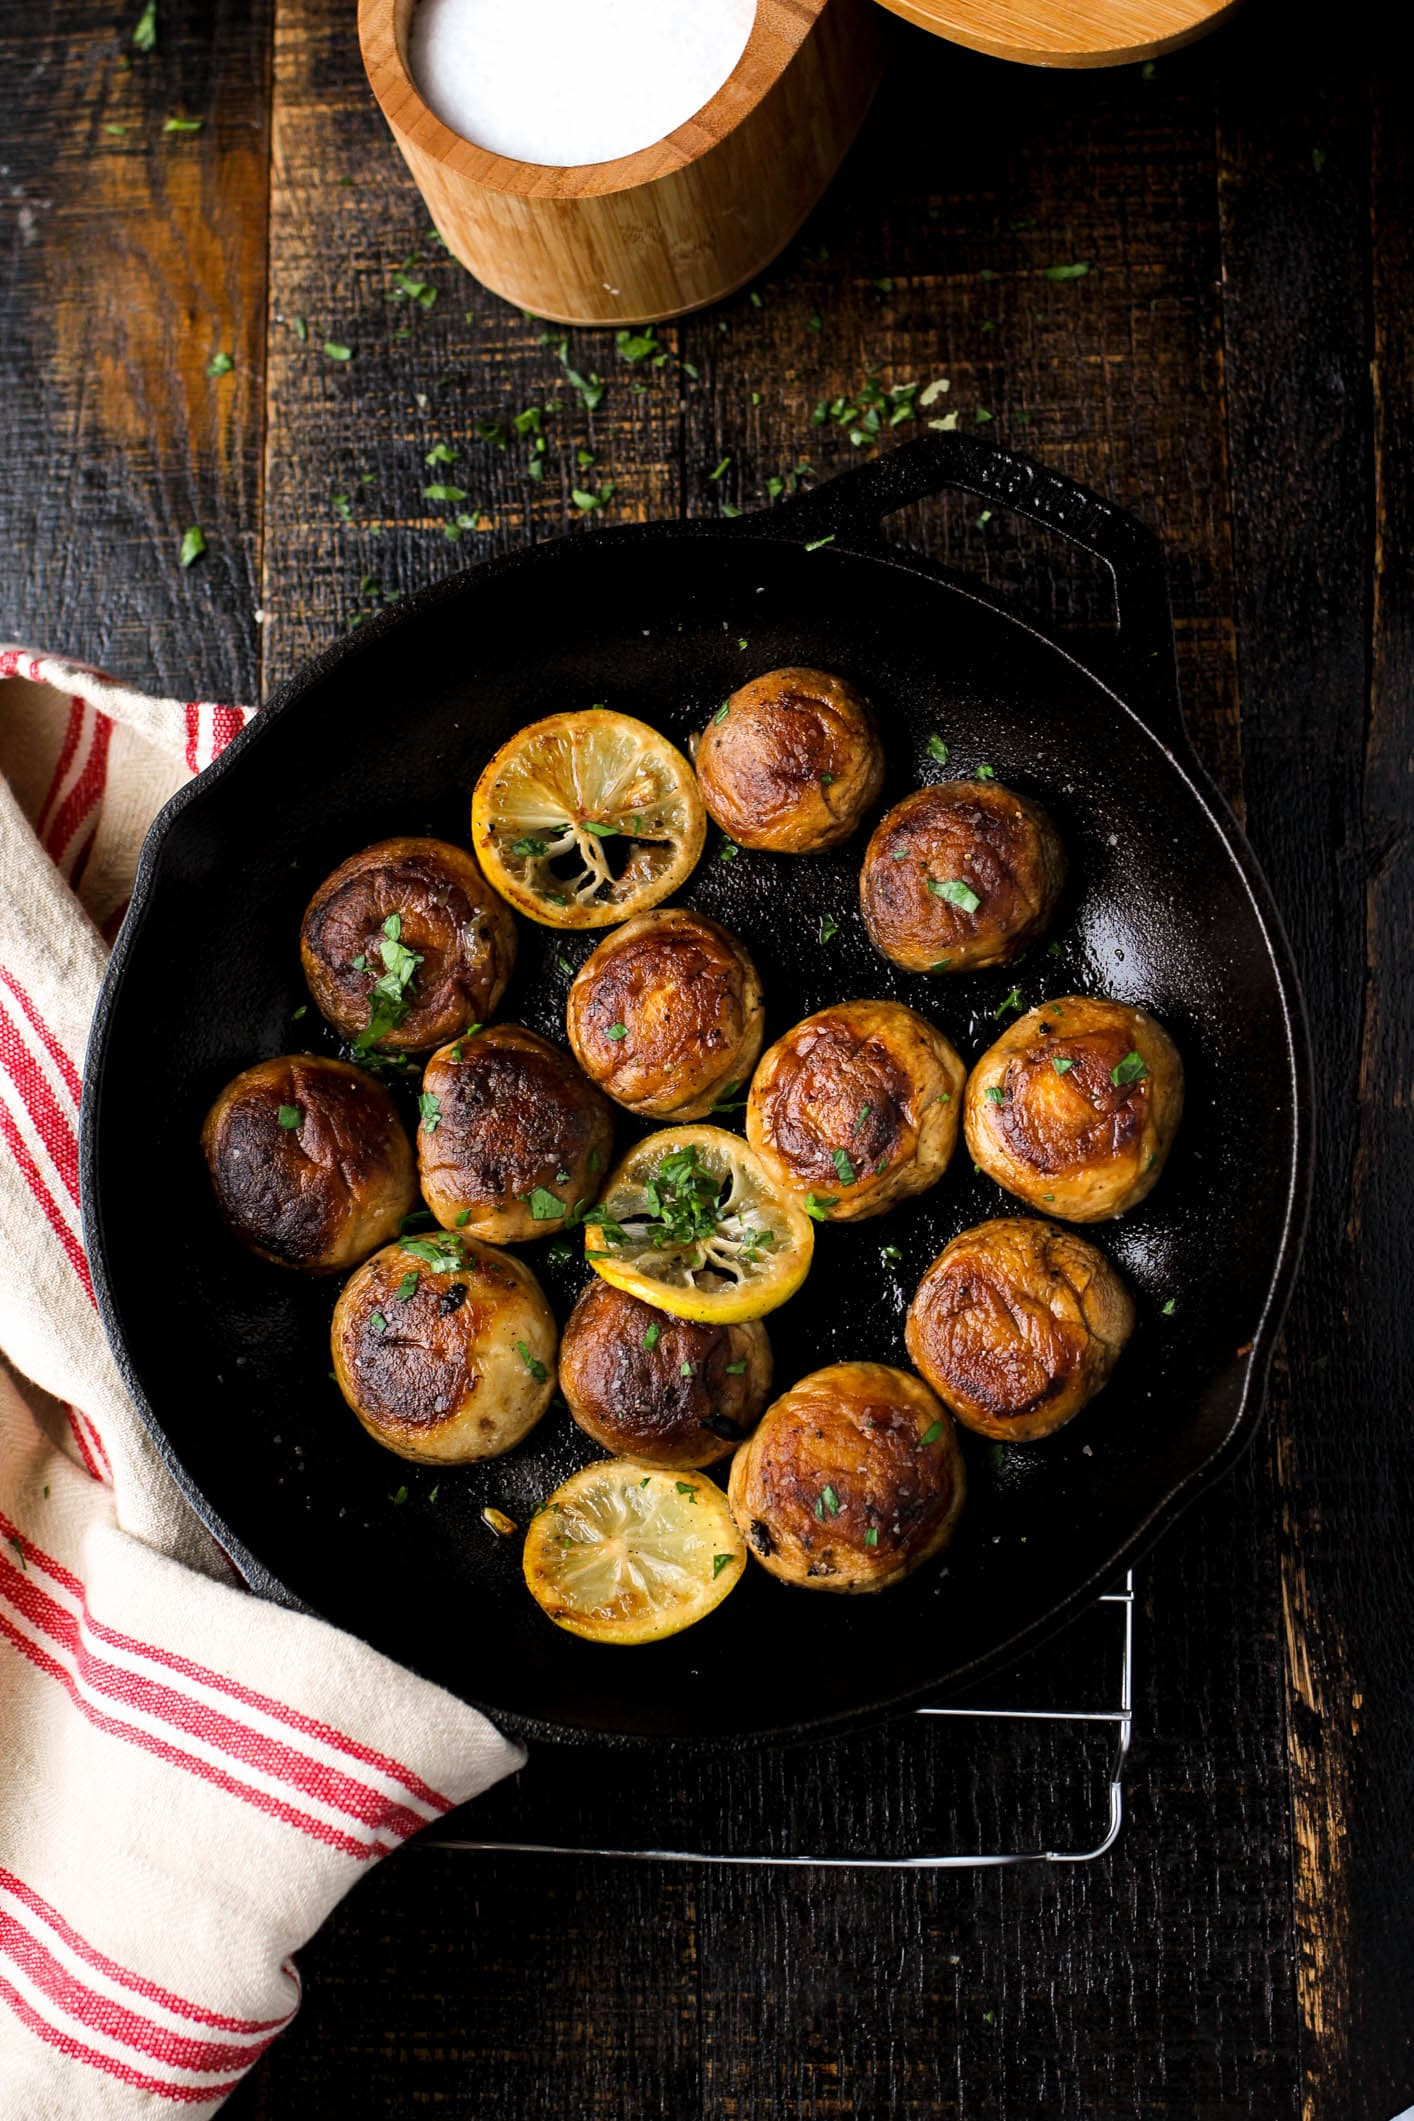 One-Pan-Roasted-Mushrooms-with-Lemon-Butter-Sauce-3-of-8-Copy